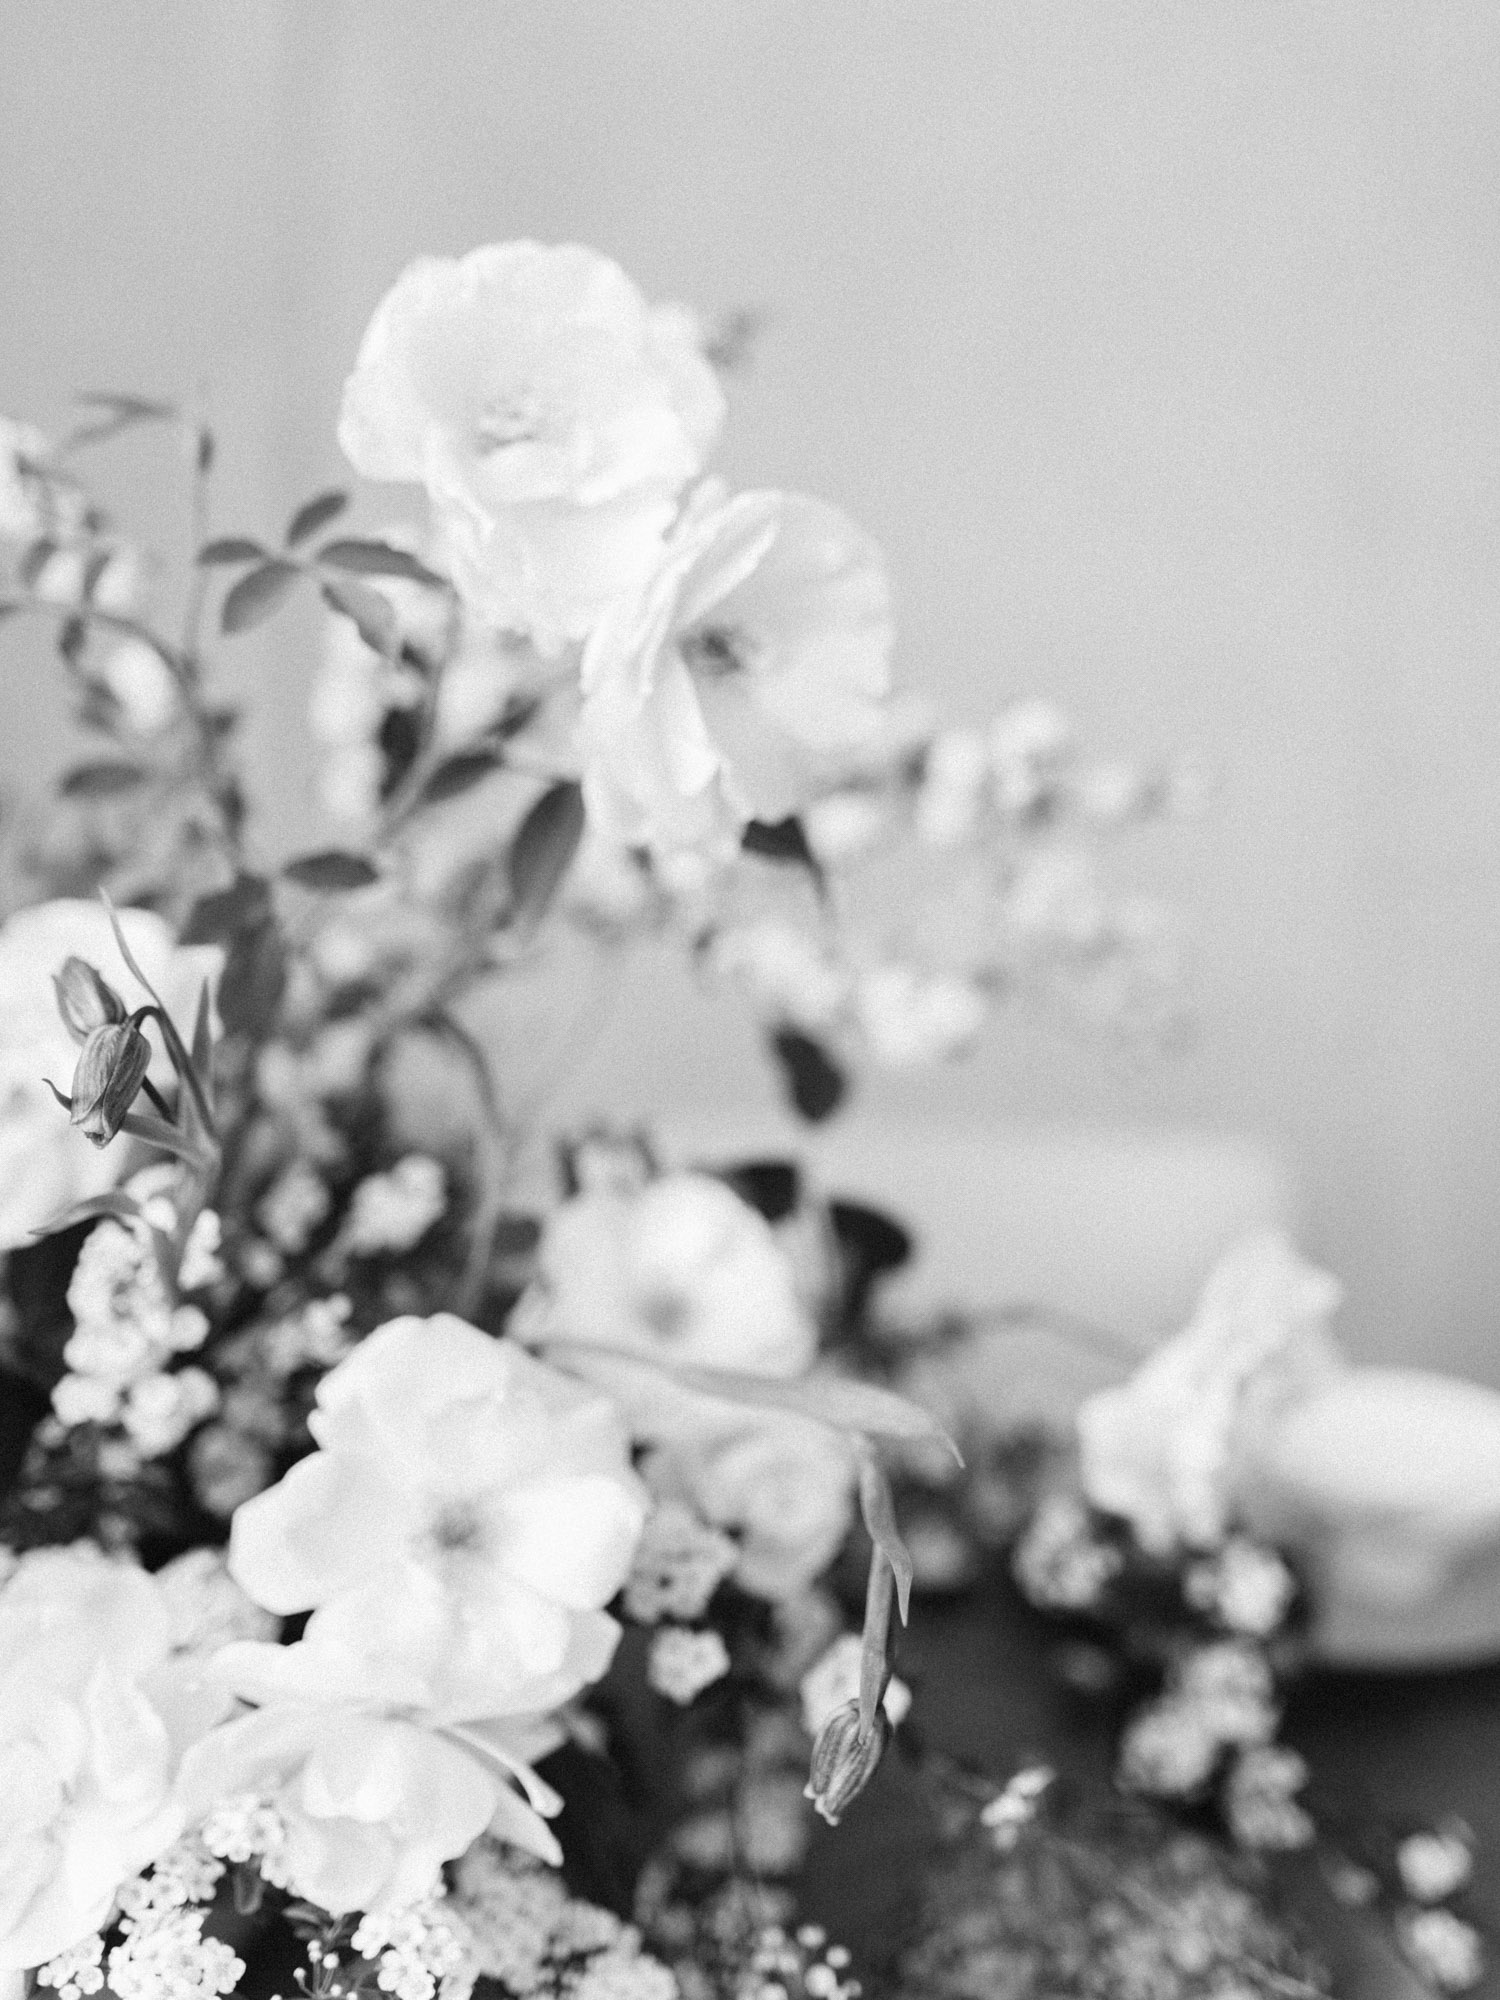 Black and white detail of white garden roses in an untamed floral centerpiece